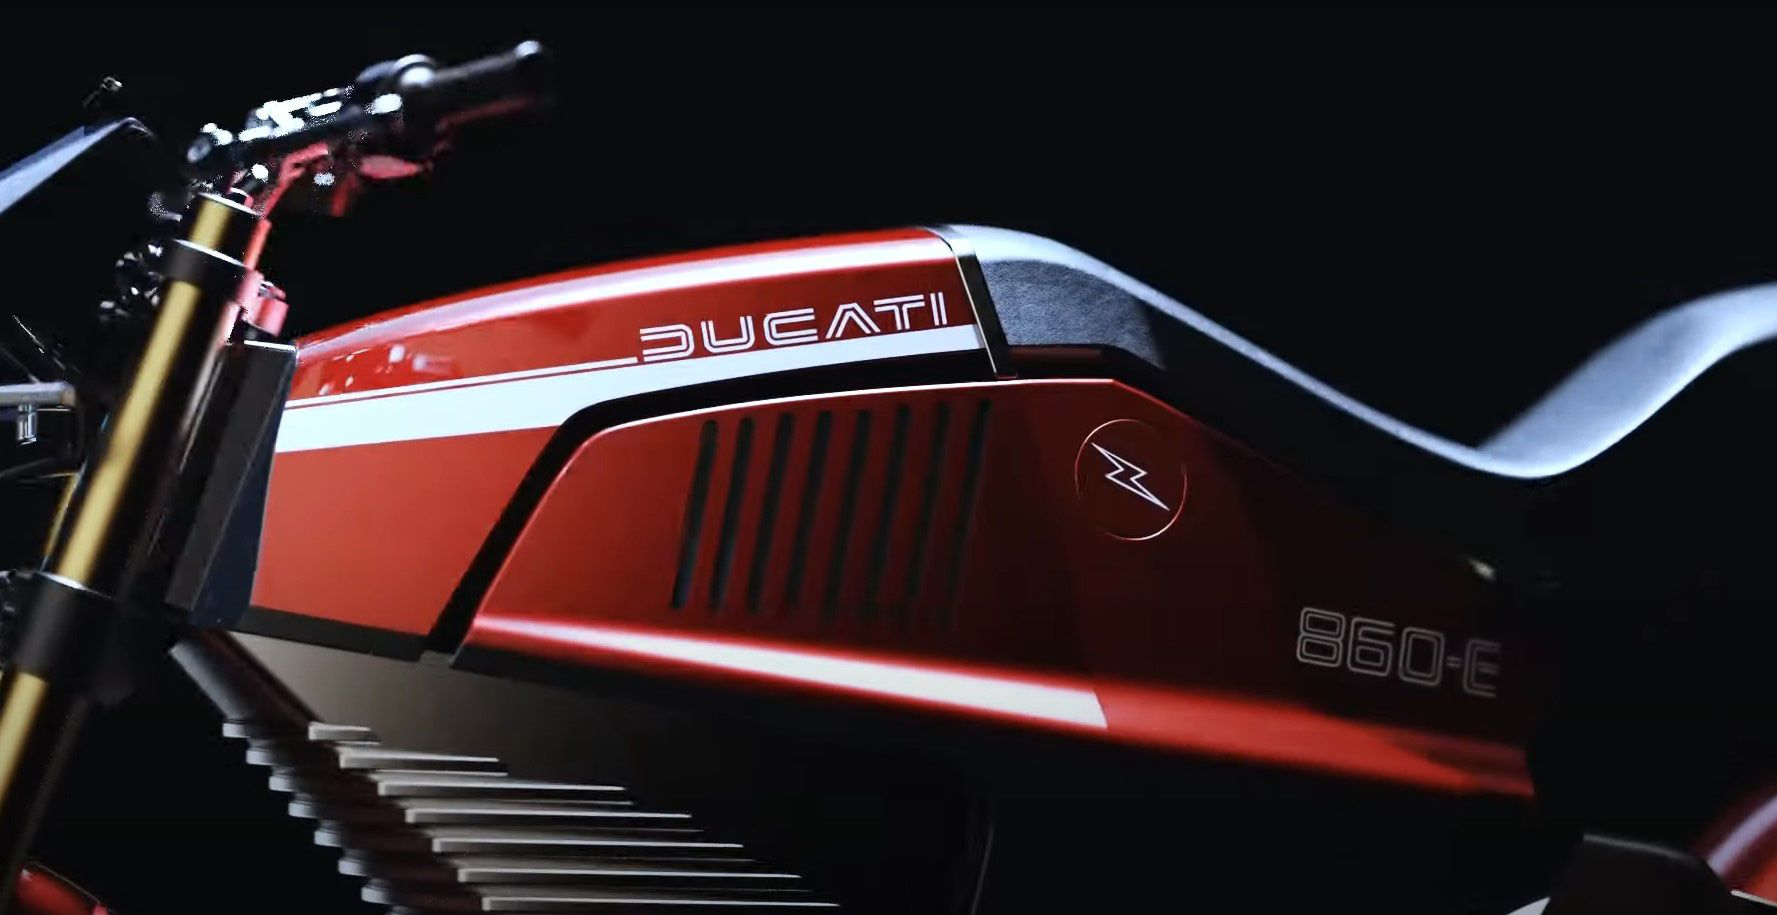 Italdesign Gives Us an Electric Ducati